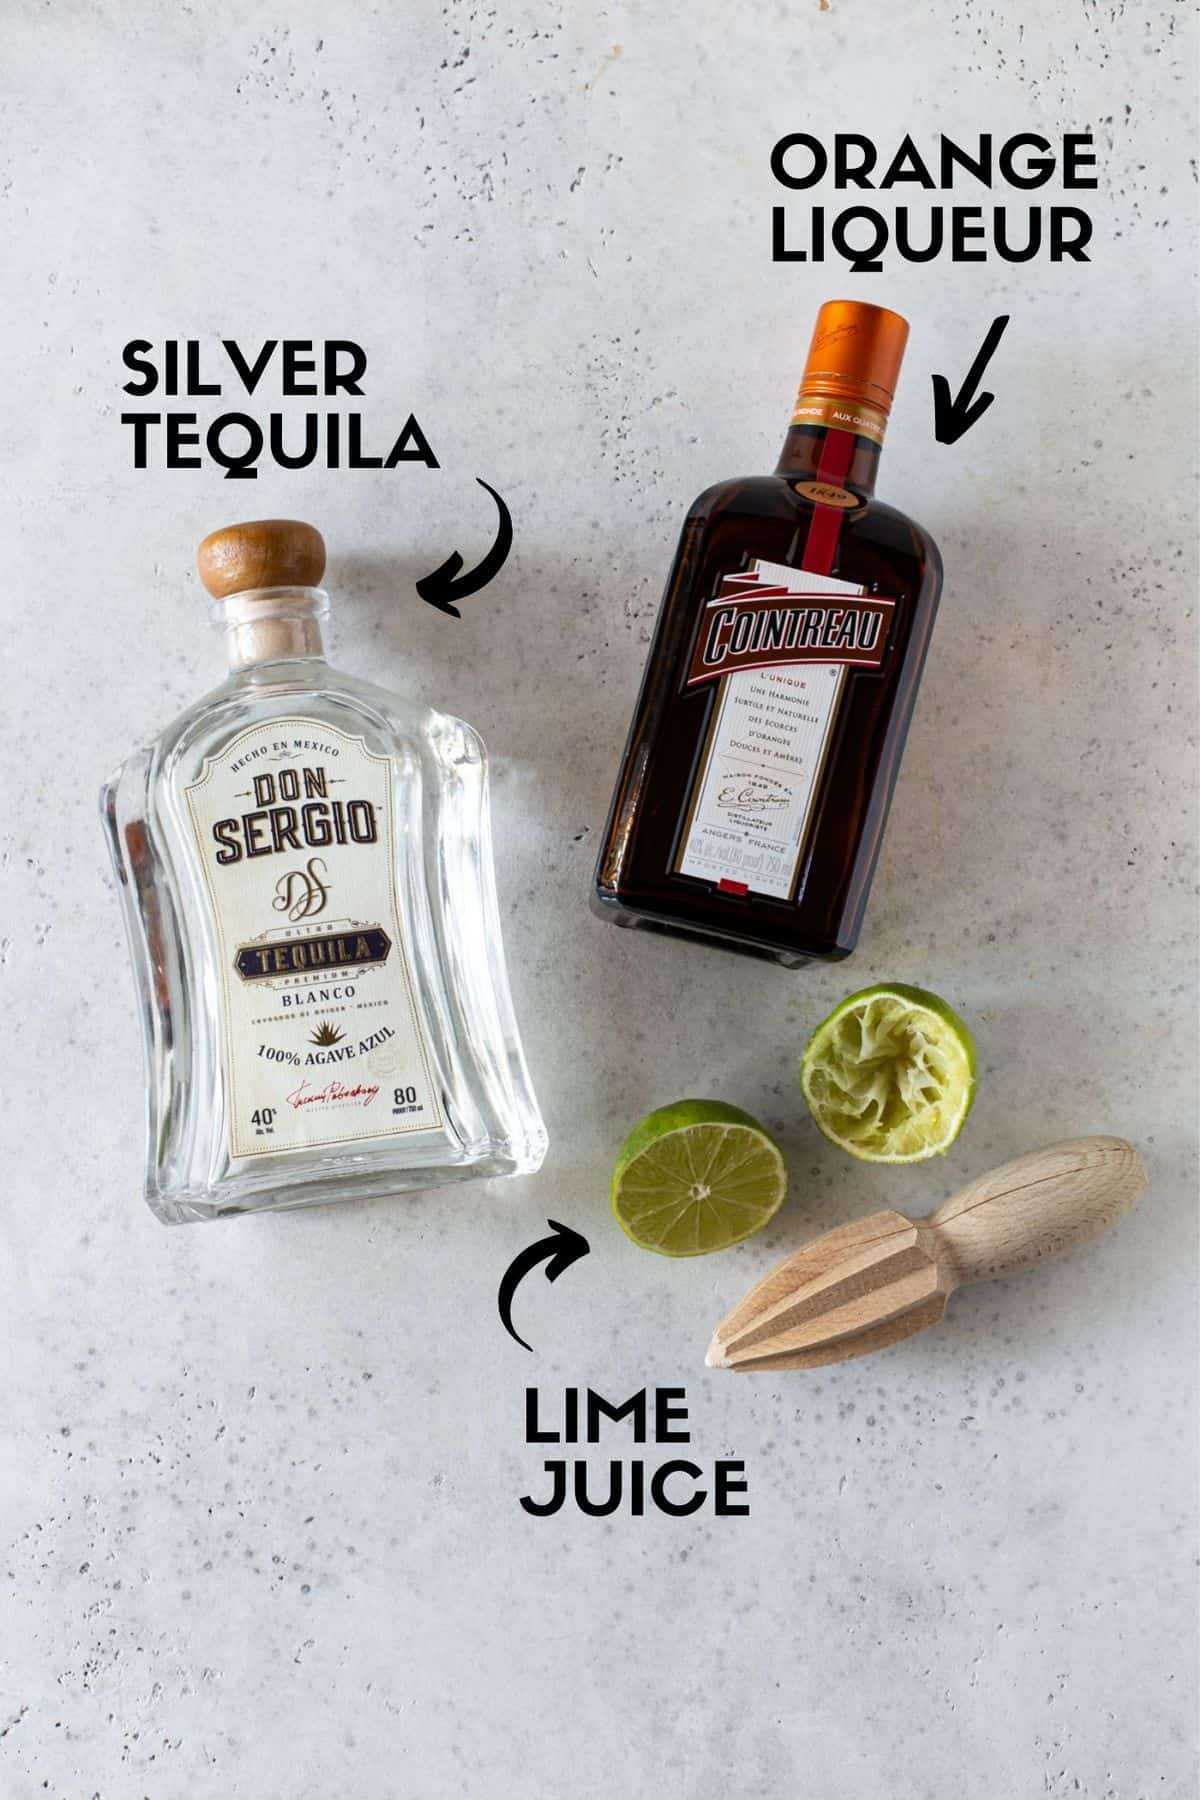 Margarita ingredients including tequila bottle, cointreau bottle and lime half.